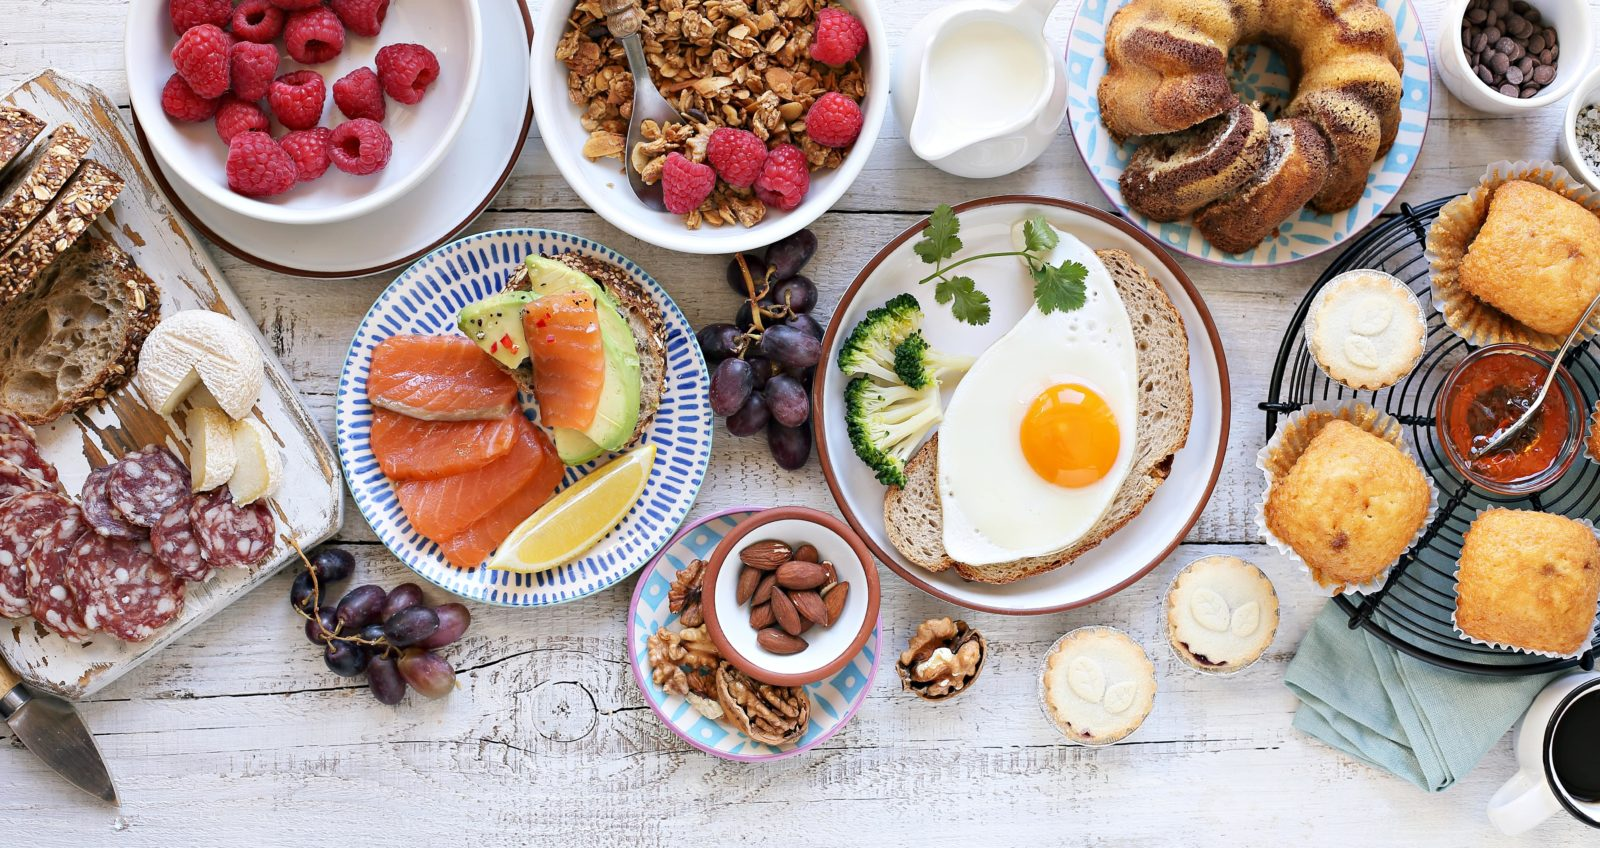 Scrumptious brunches in Pune that match the city's year-round lovely weather